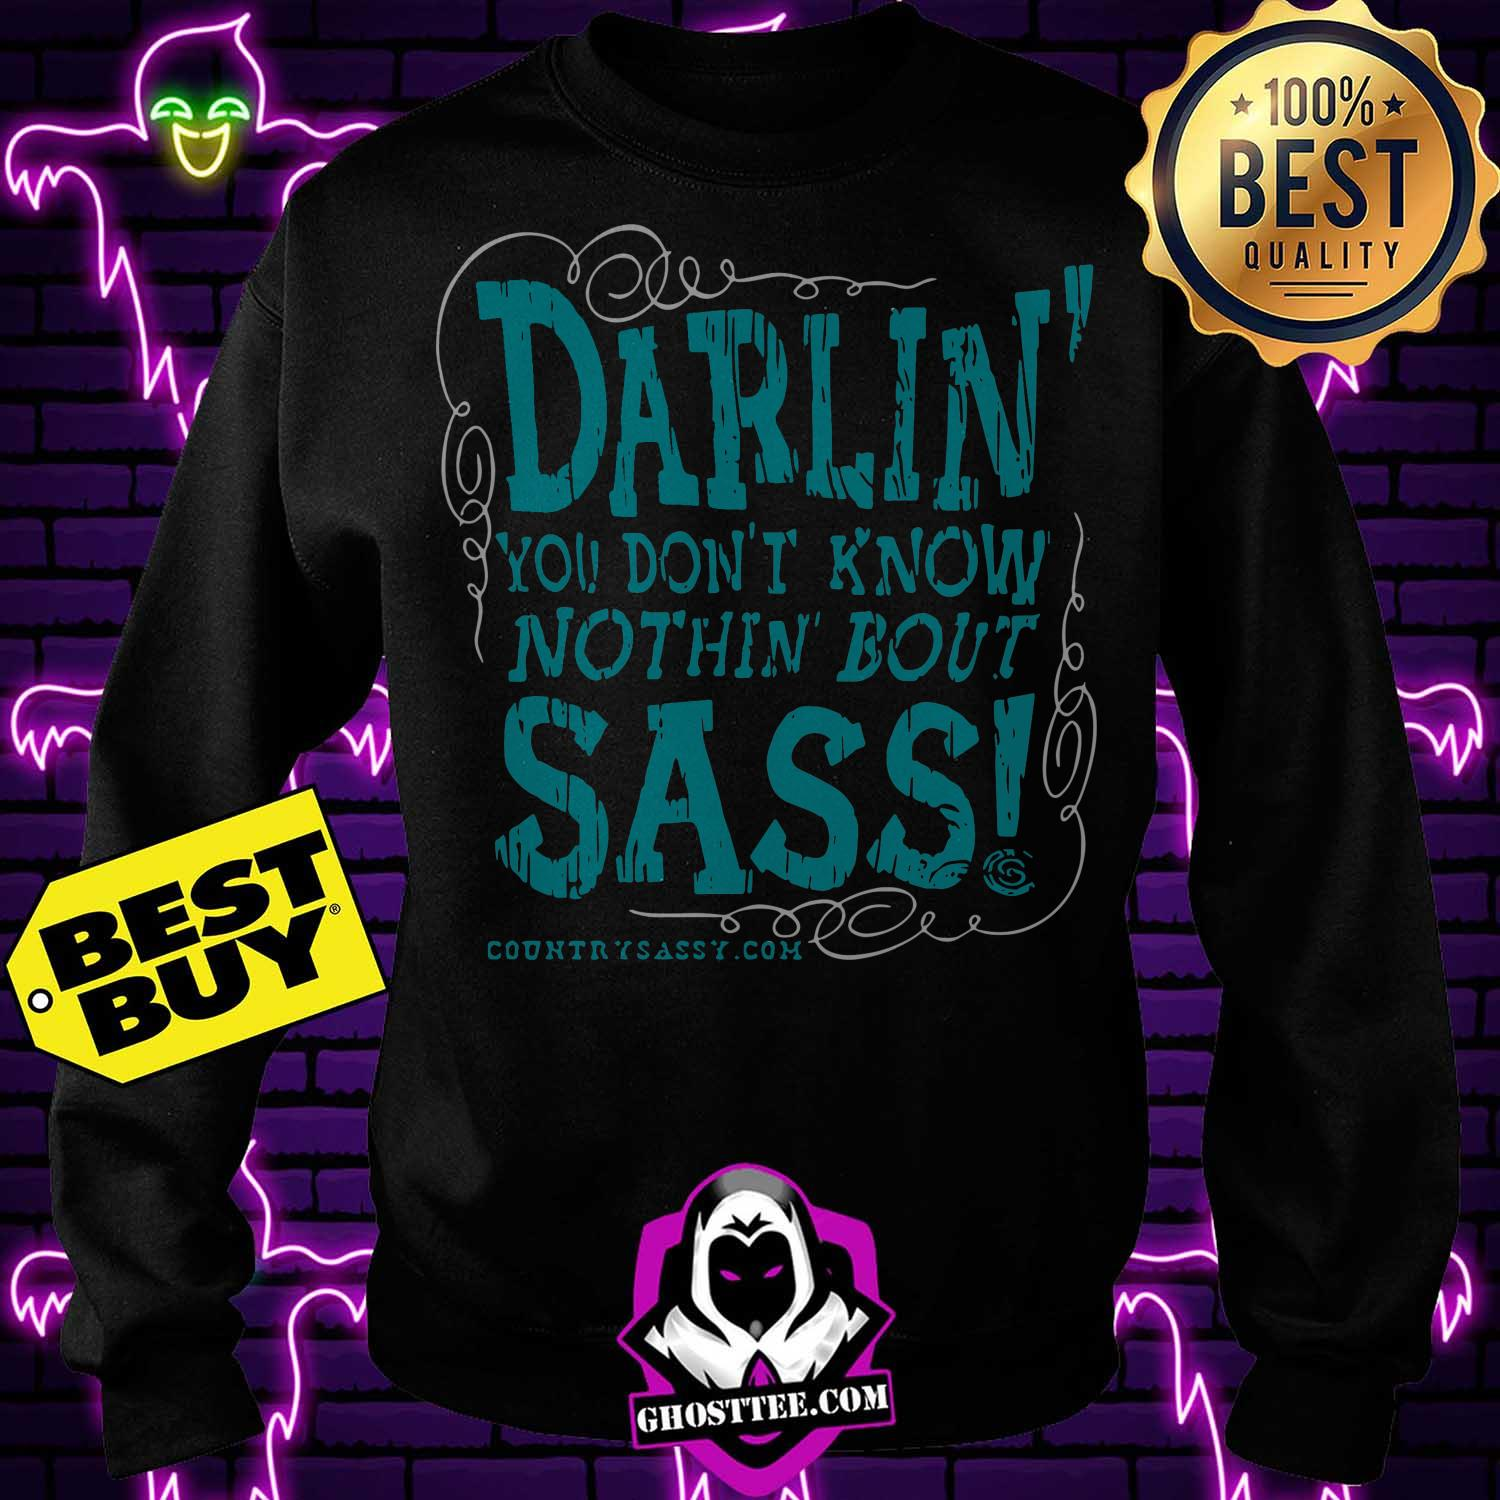 darlin you dont know nothin bout sass sweastshirt - Darlin you don't know nothin bout Sass shirt